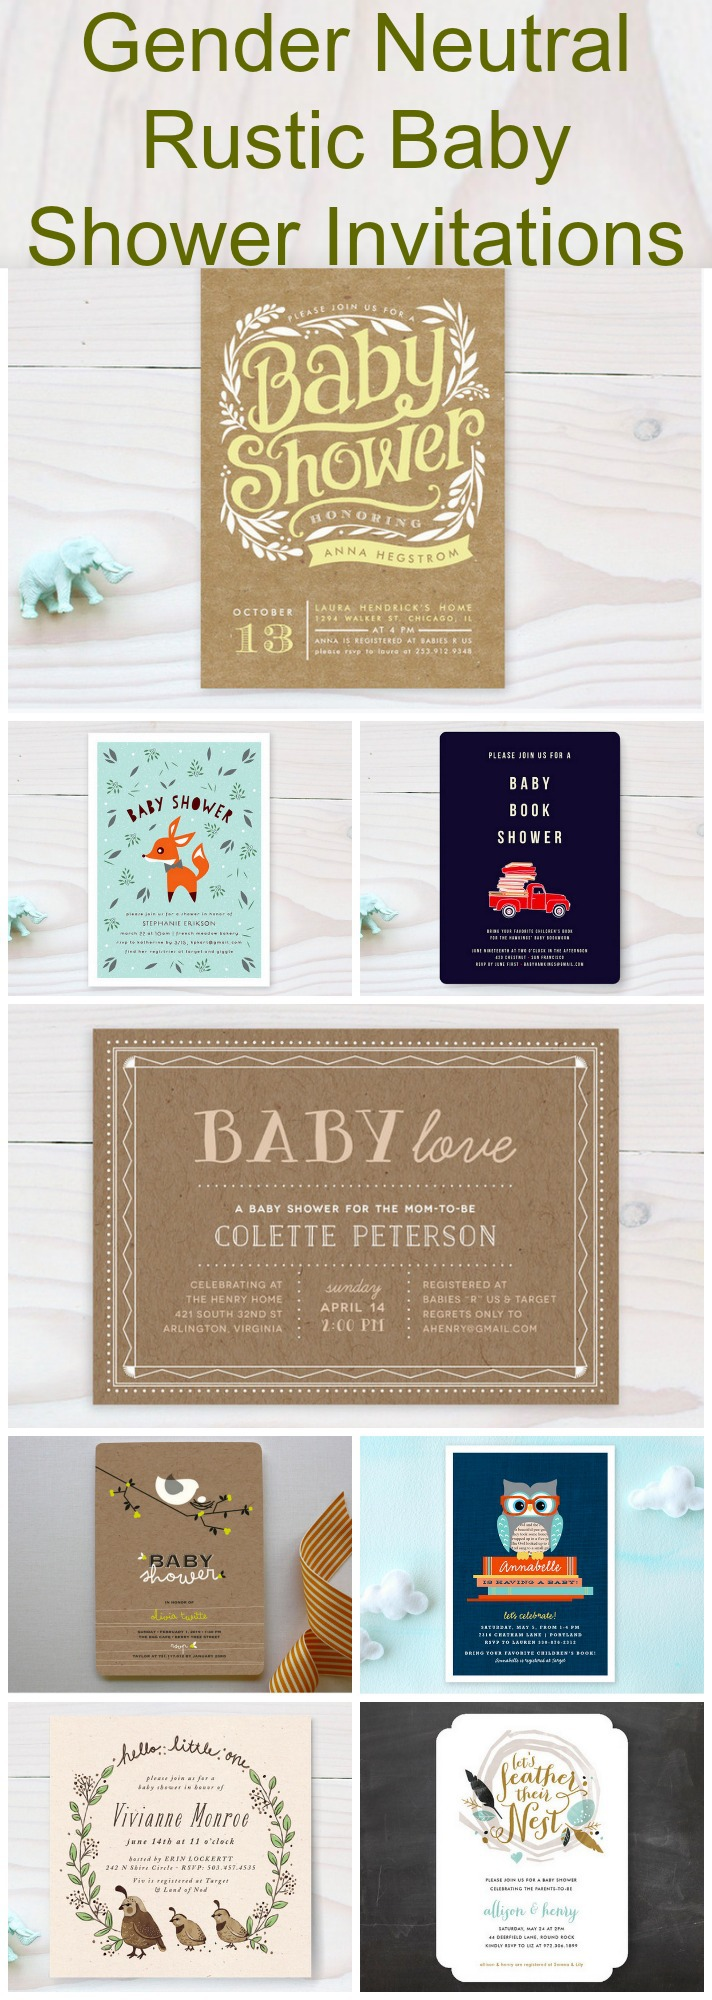 il fullxfull 1236955432 awq4 rustic baby shower invitations